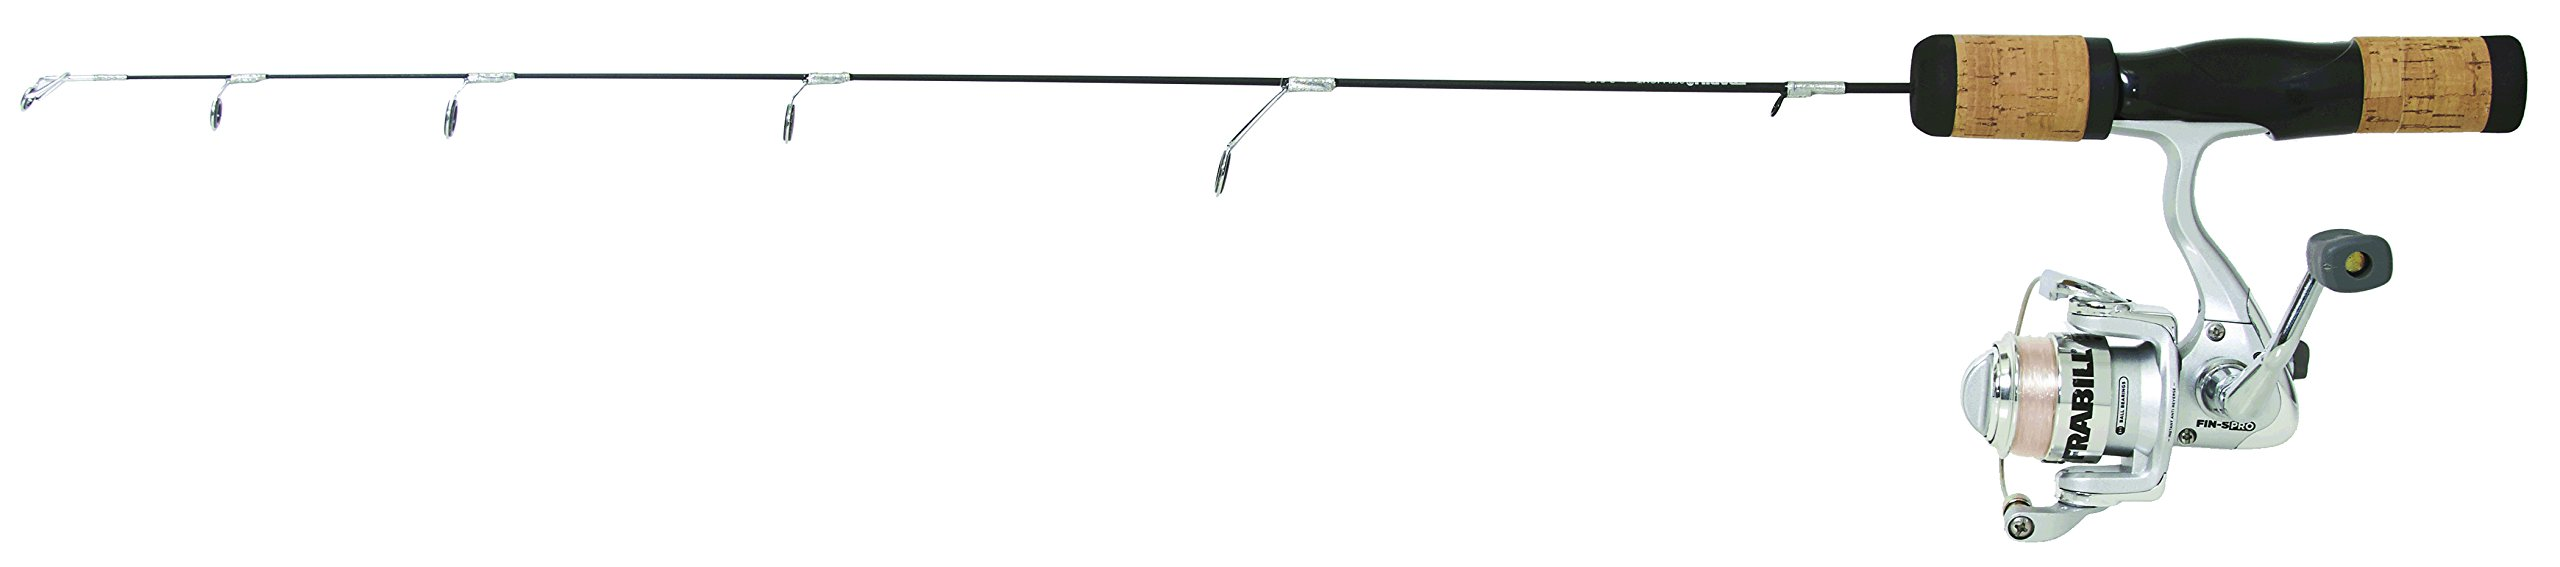 Frabill Fin-S Pro 30-Inch Medium Ice Fishing Rod and Reel Combo, Black by Frabill